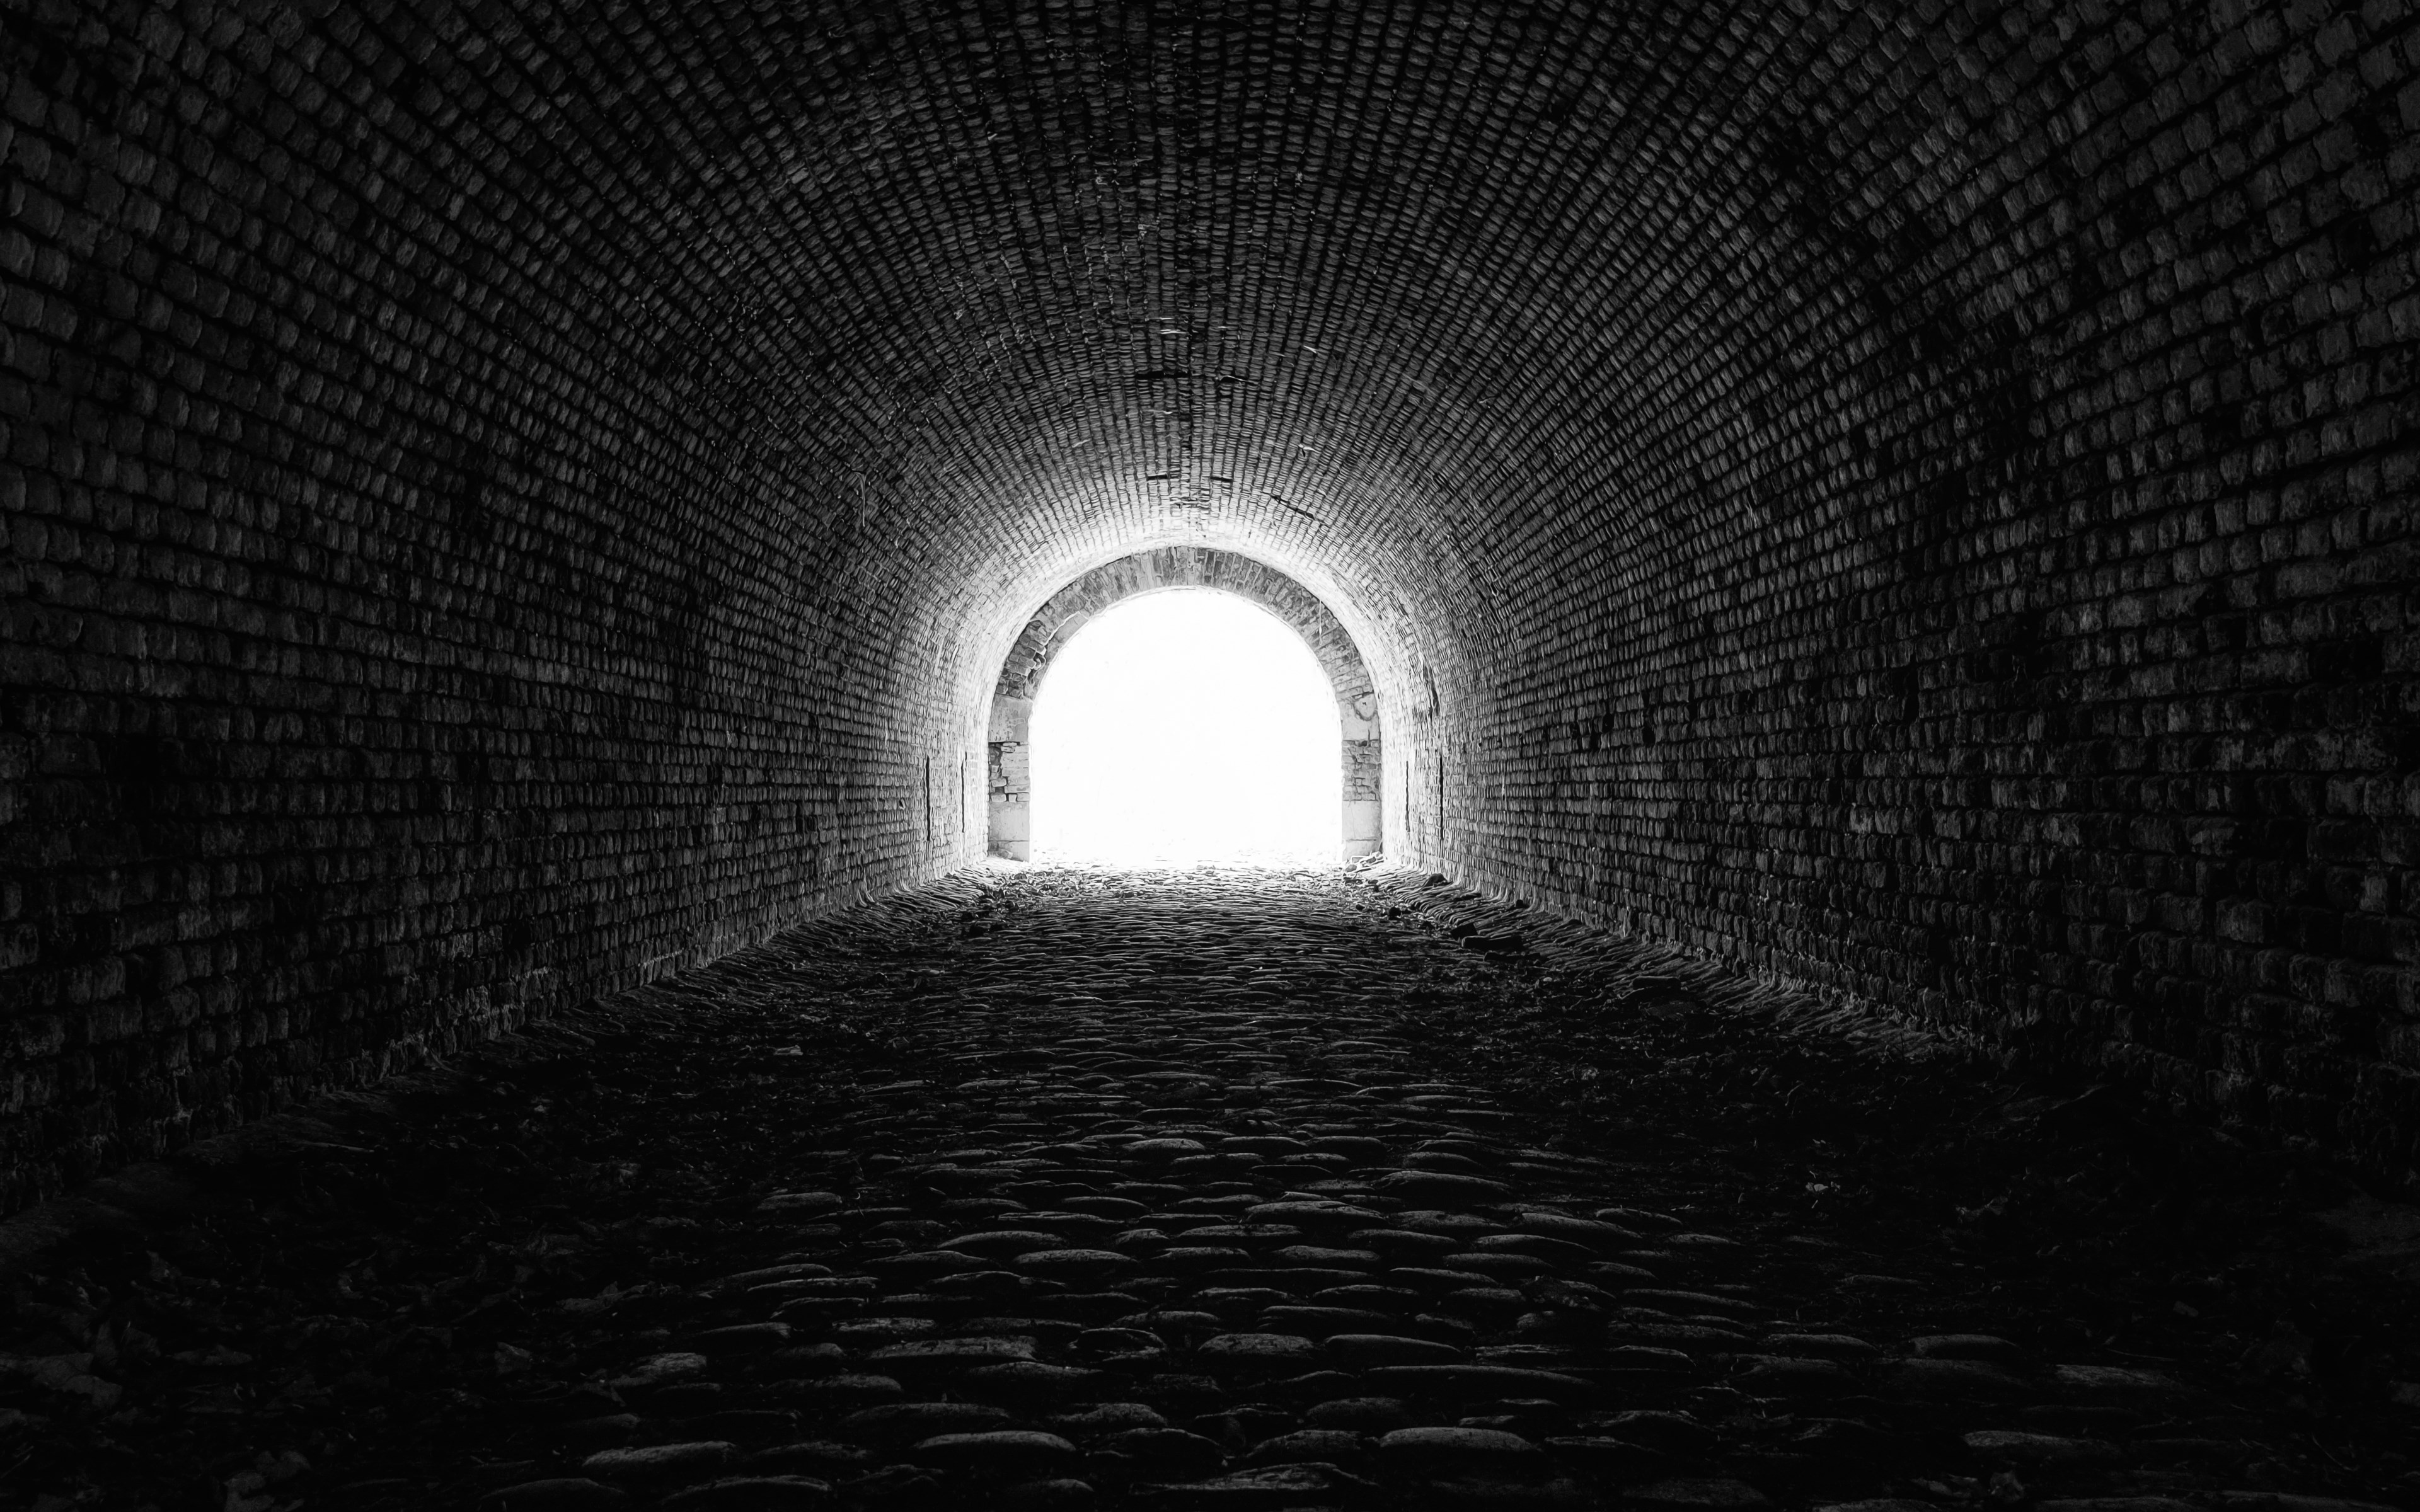 Light at the end of the tunnel wallpaper 3840x2400